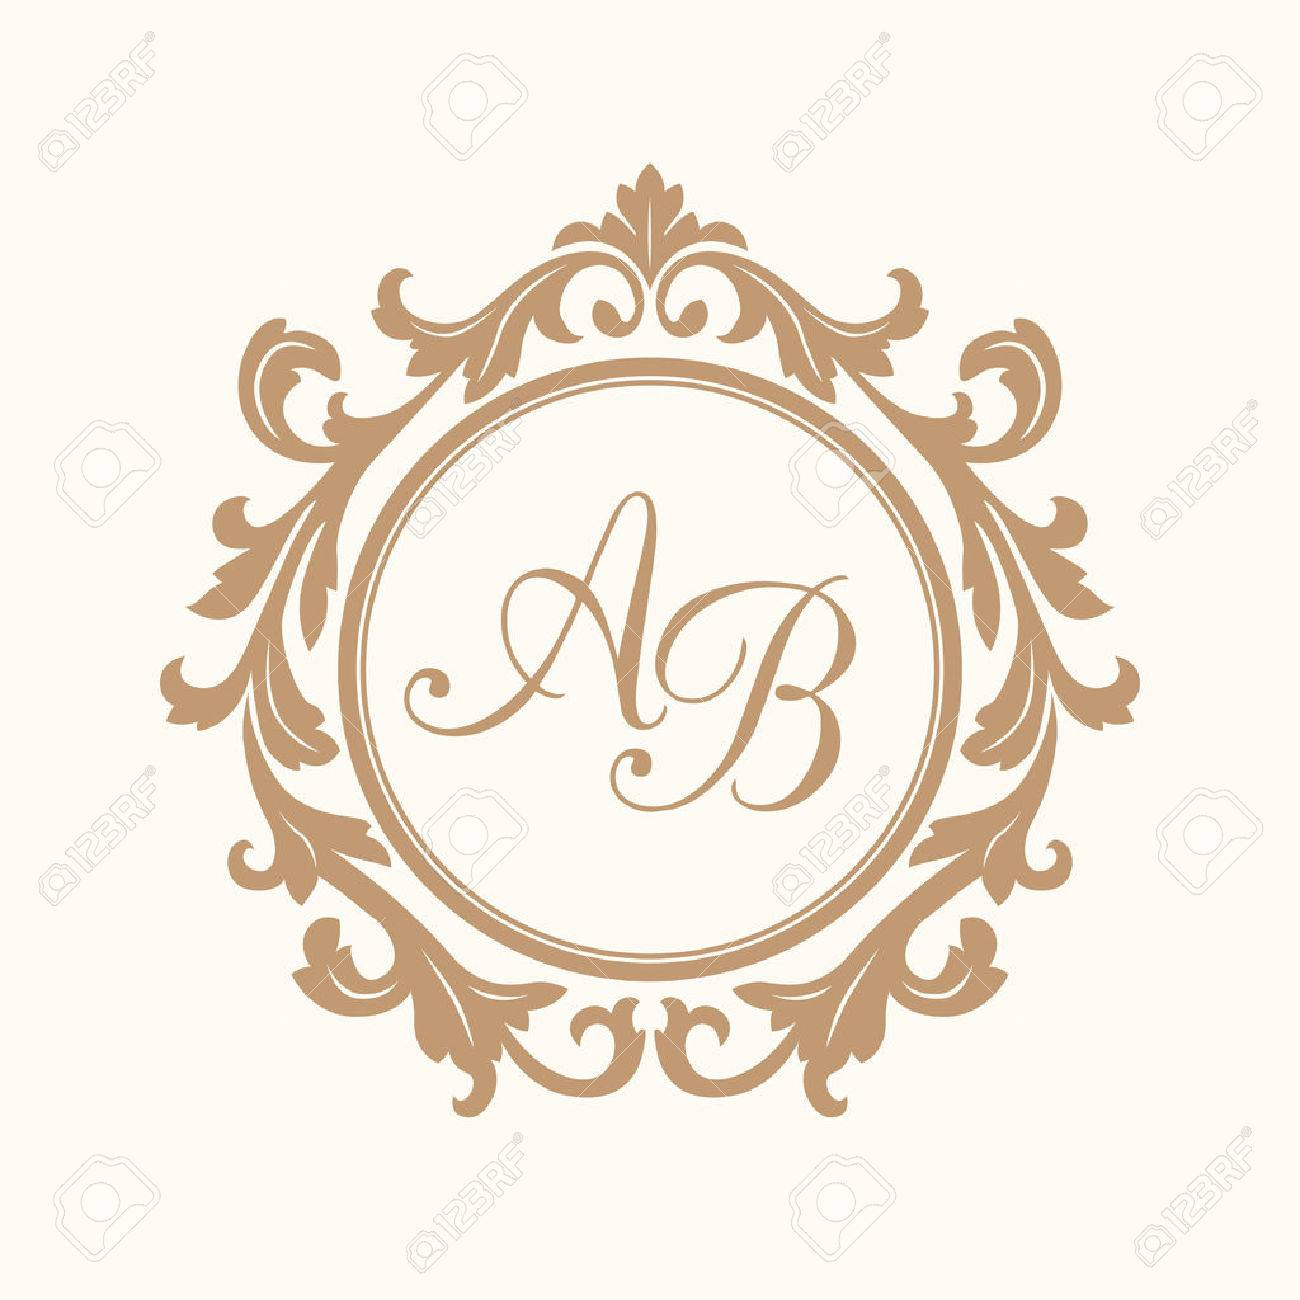 elegant floral monogram design template for one or two letters